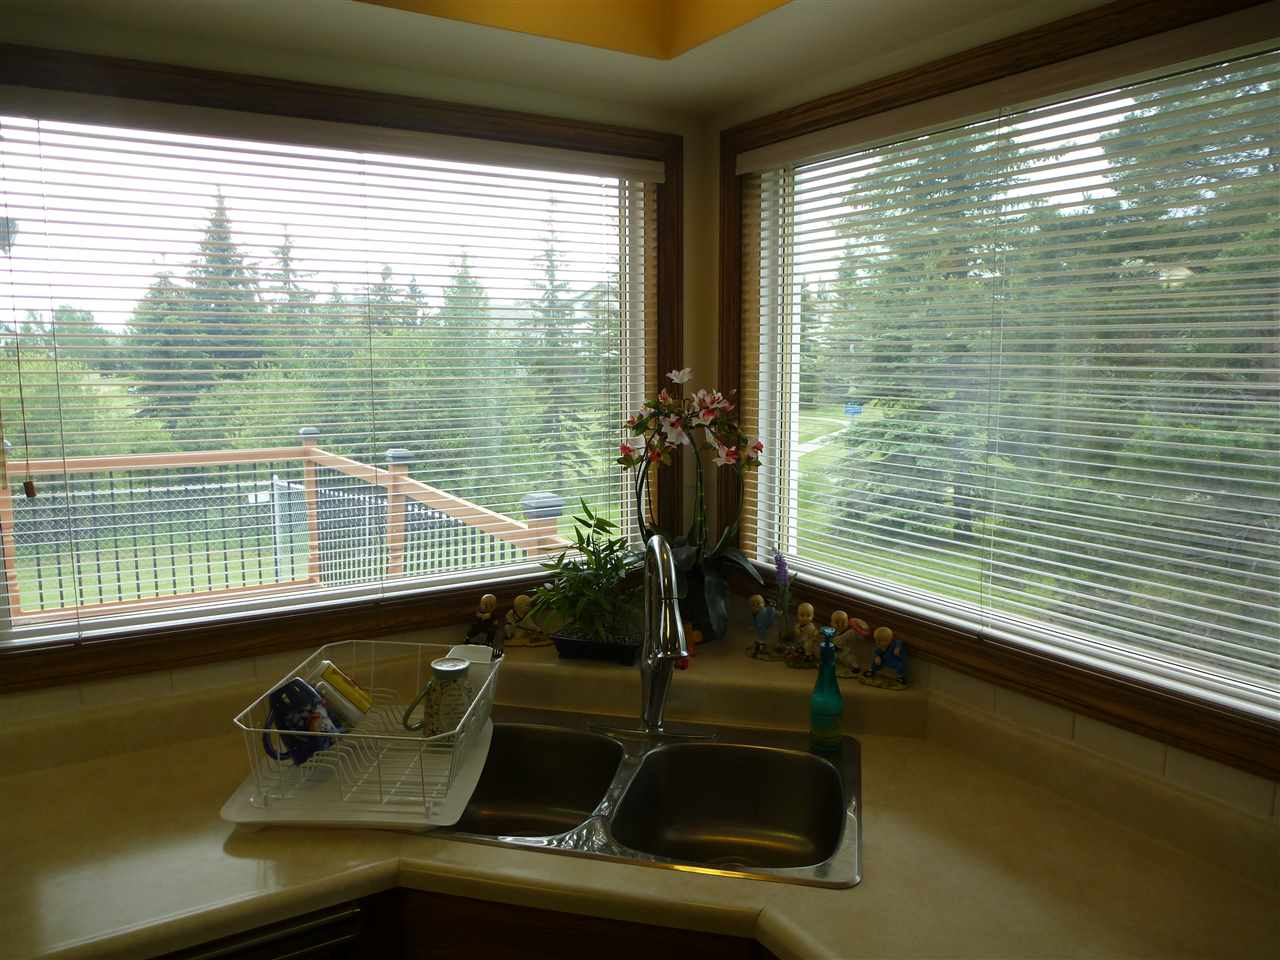 Photo 13: 315 ORMSBY Road in Edmonton: Zone 20 House for sale : MLS(r) # E4059577